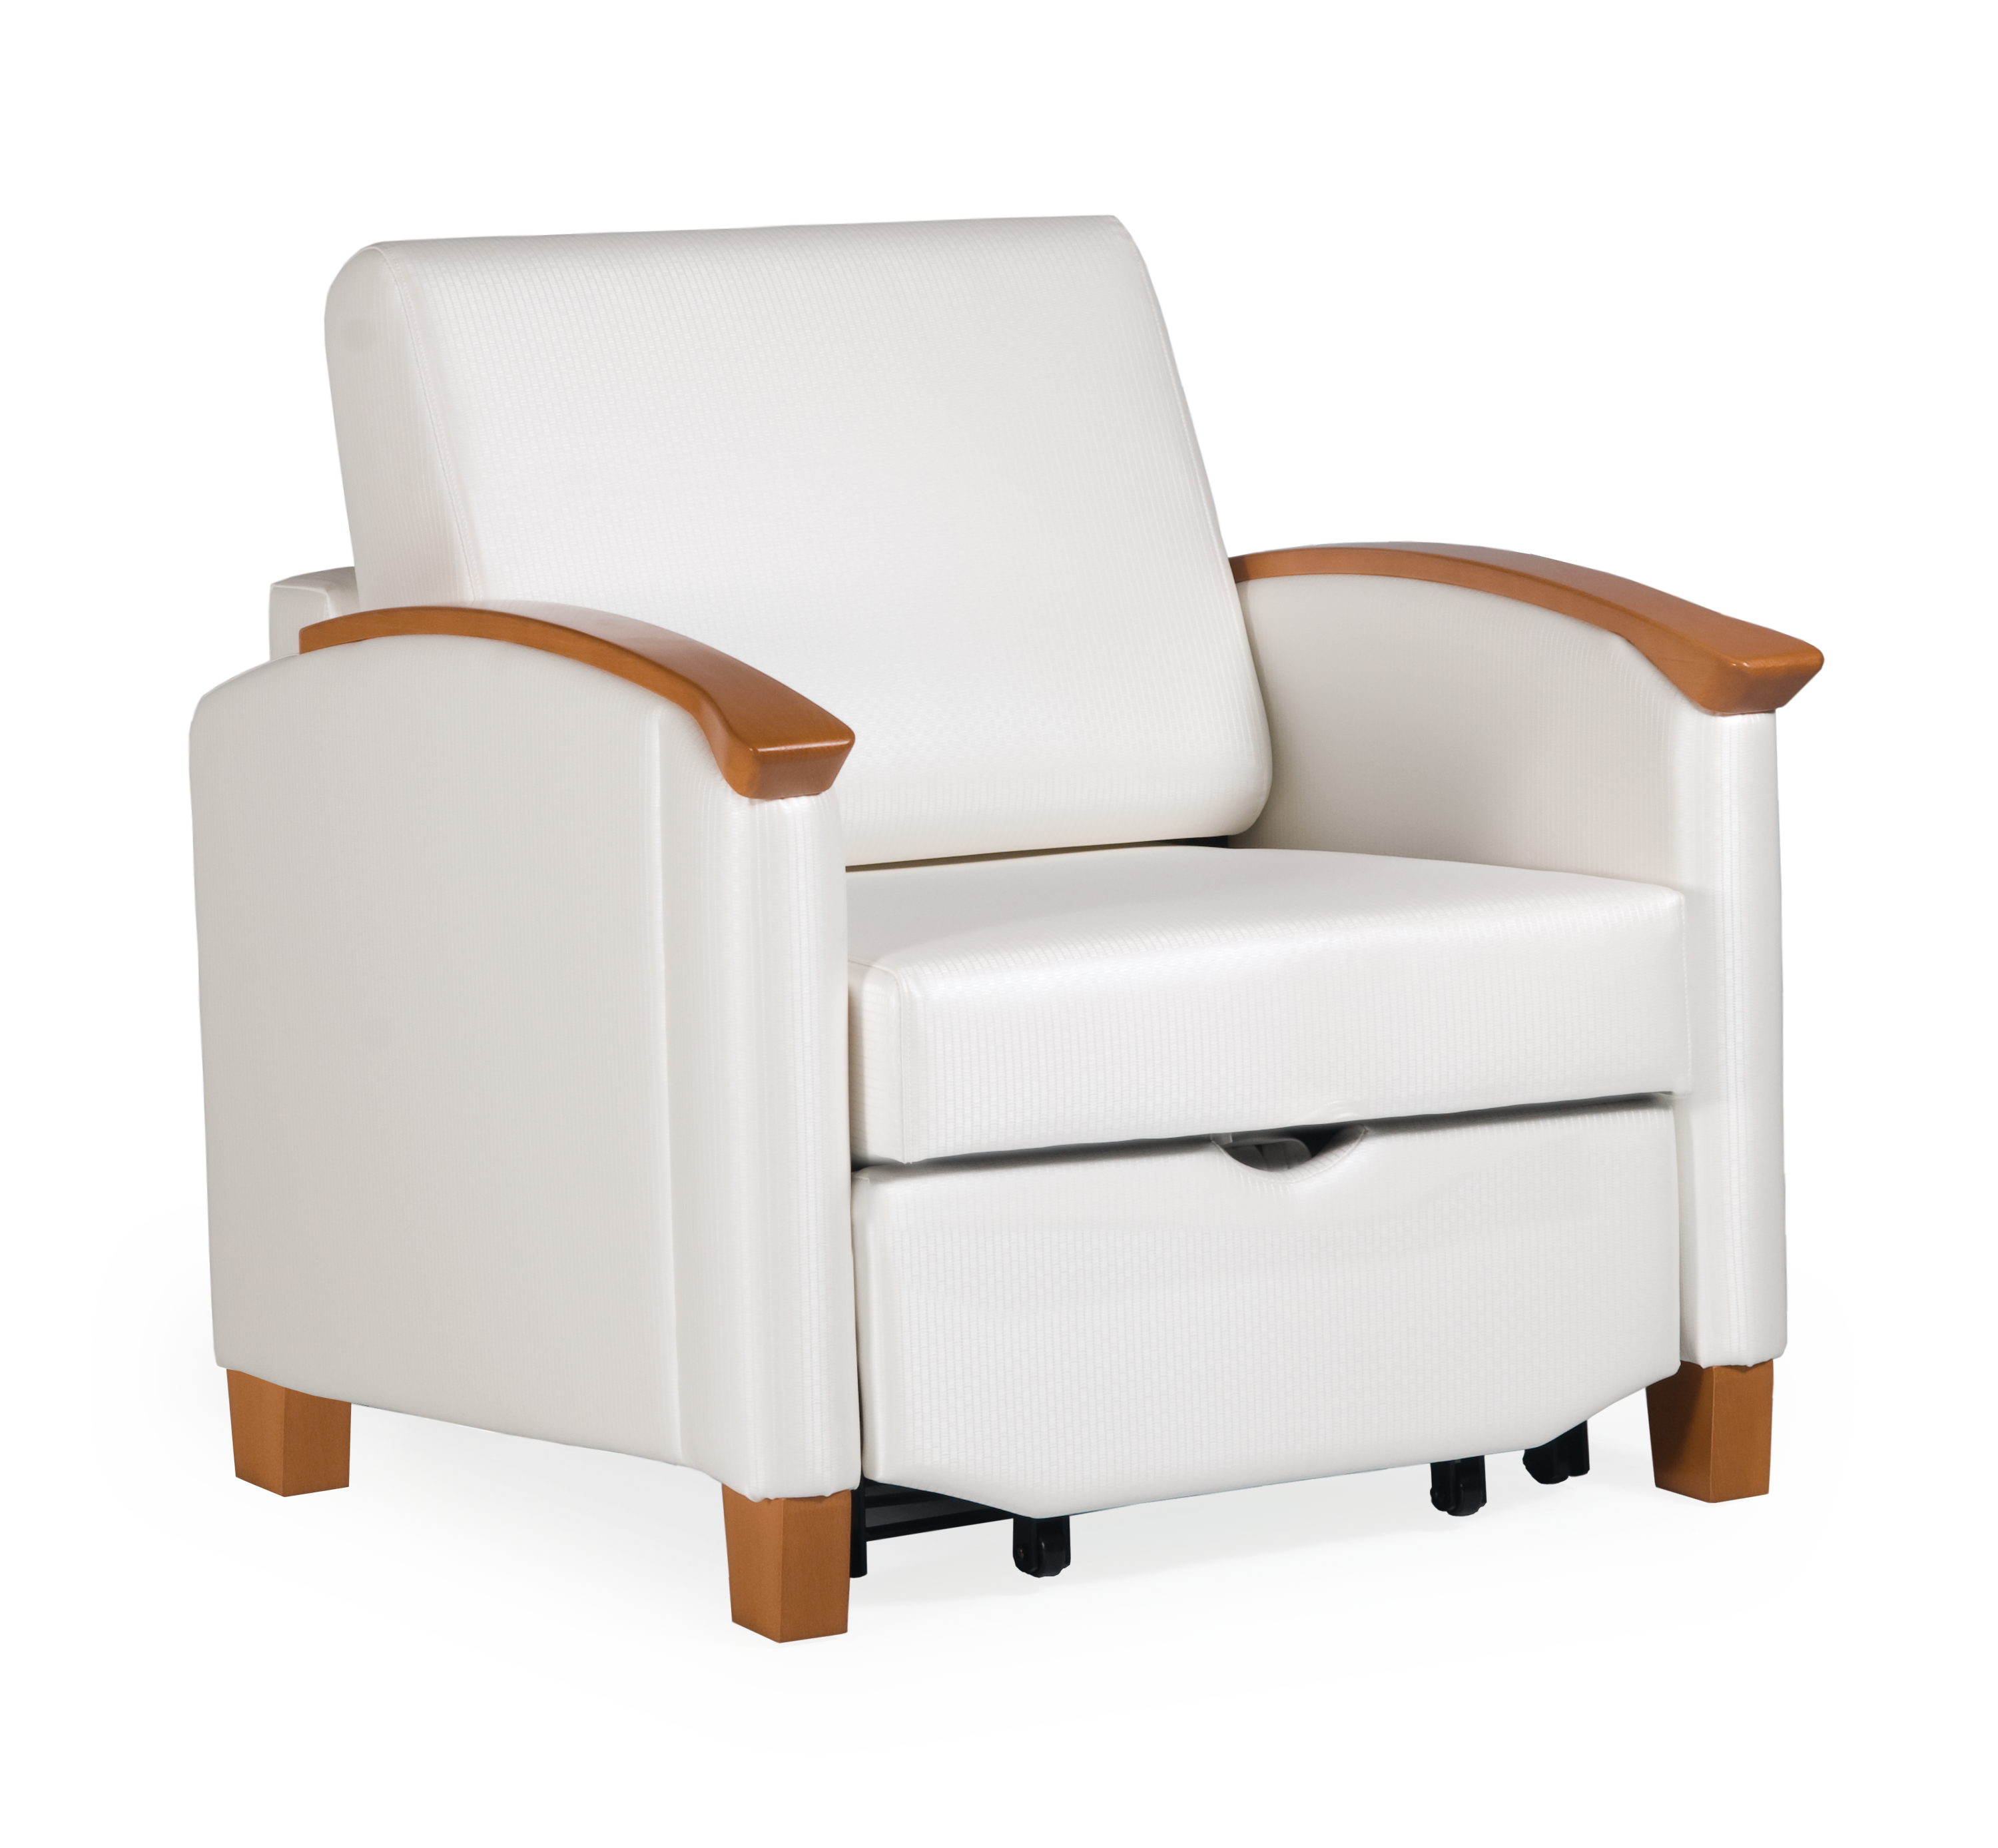 La Z Boy Harmony Sleep Chair 1 & Recliners and Sleep Chairs - Indoff Interior Solutions islam-shia.org